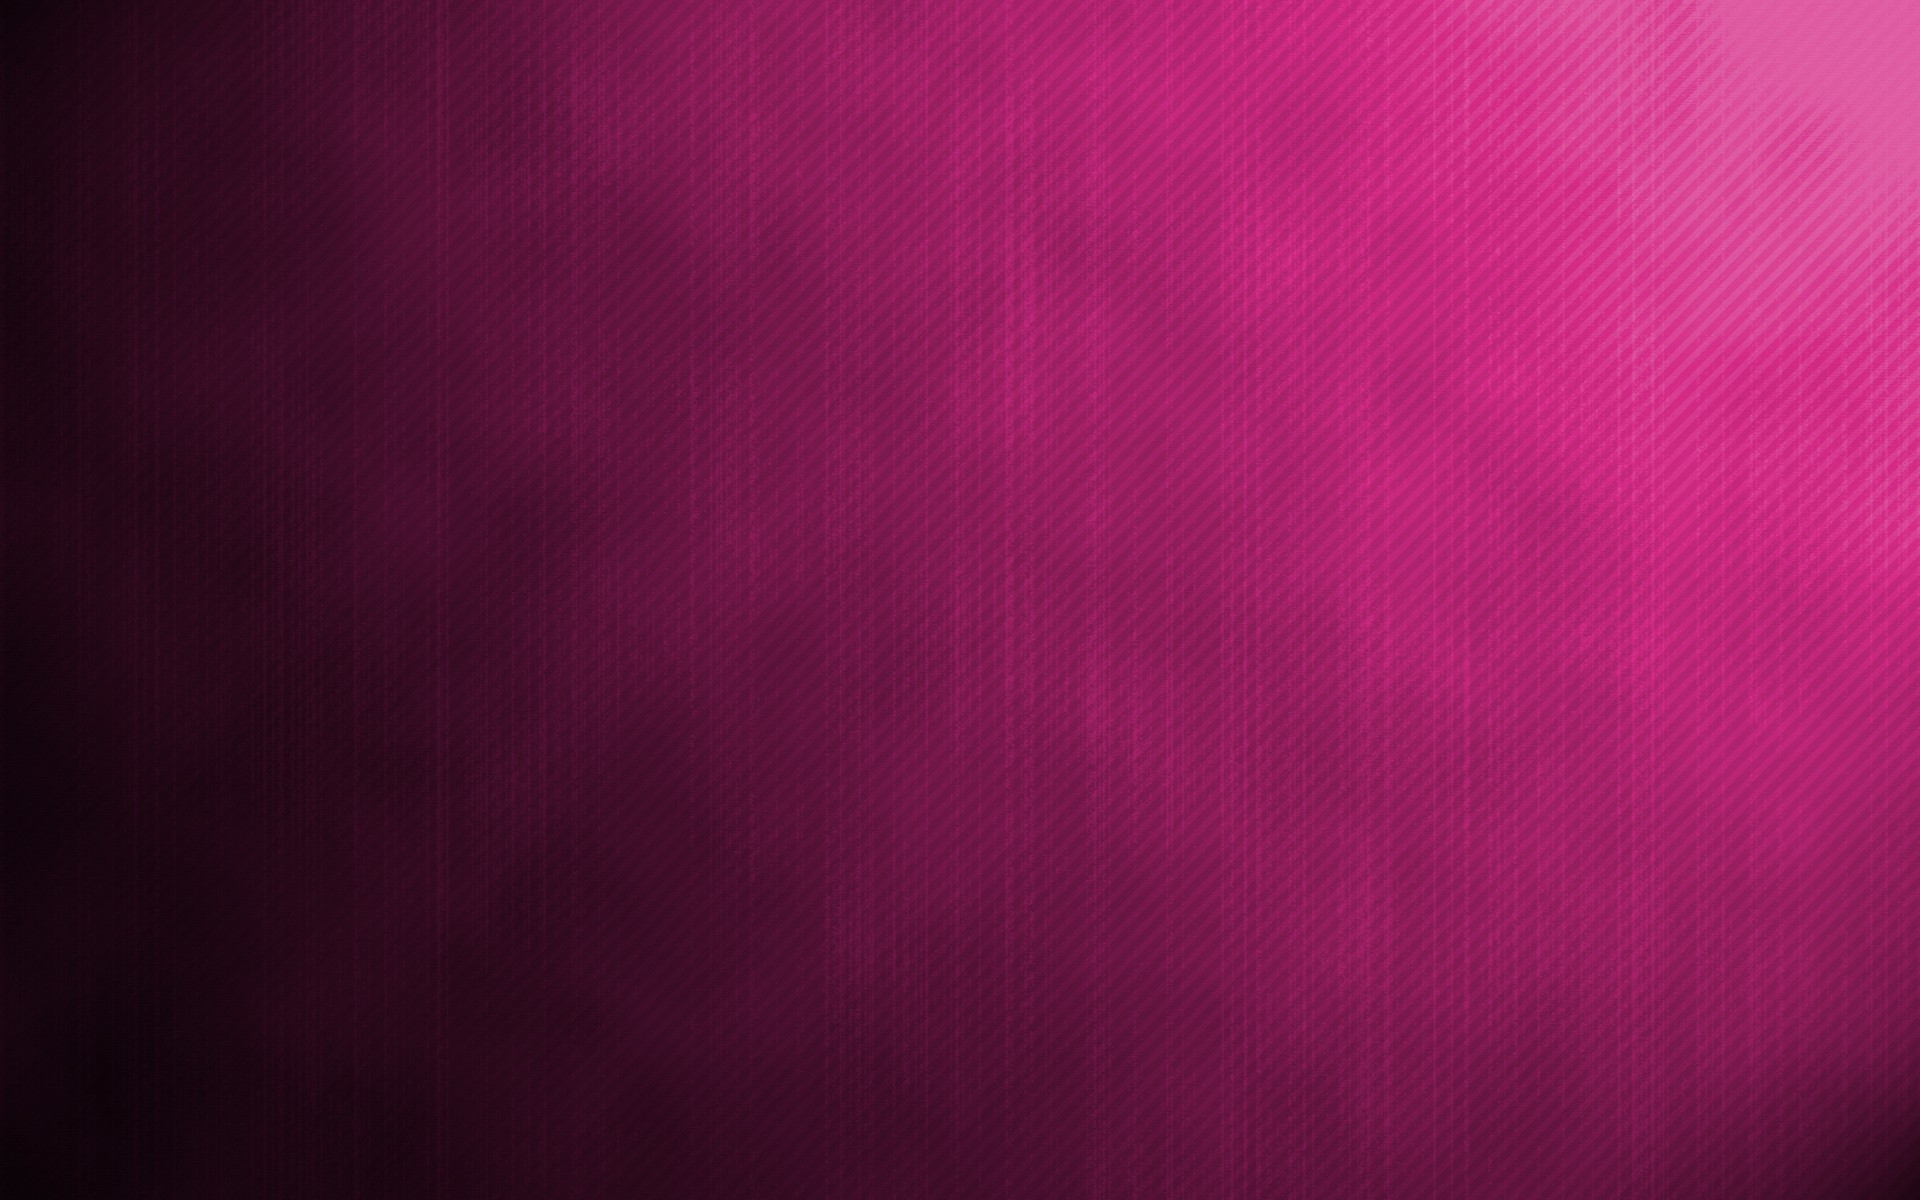 pink black backgrounds (60+ pictures)